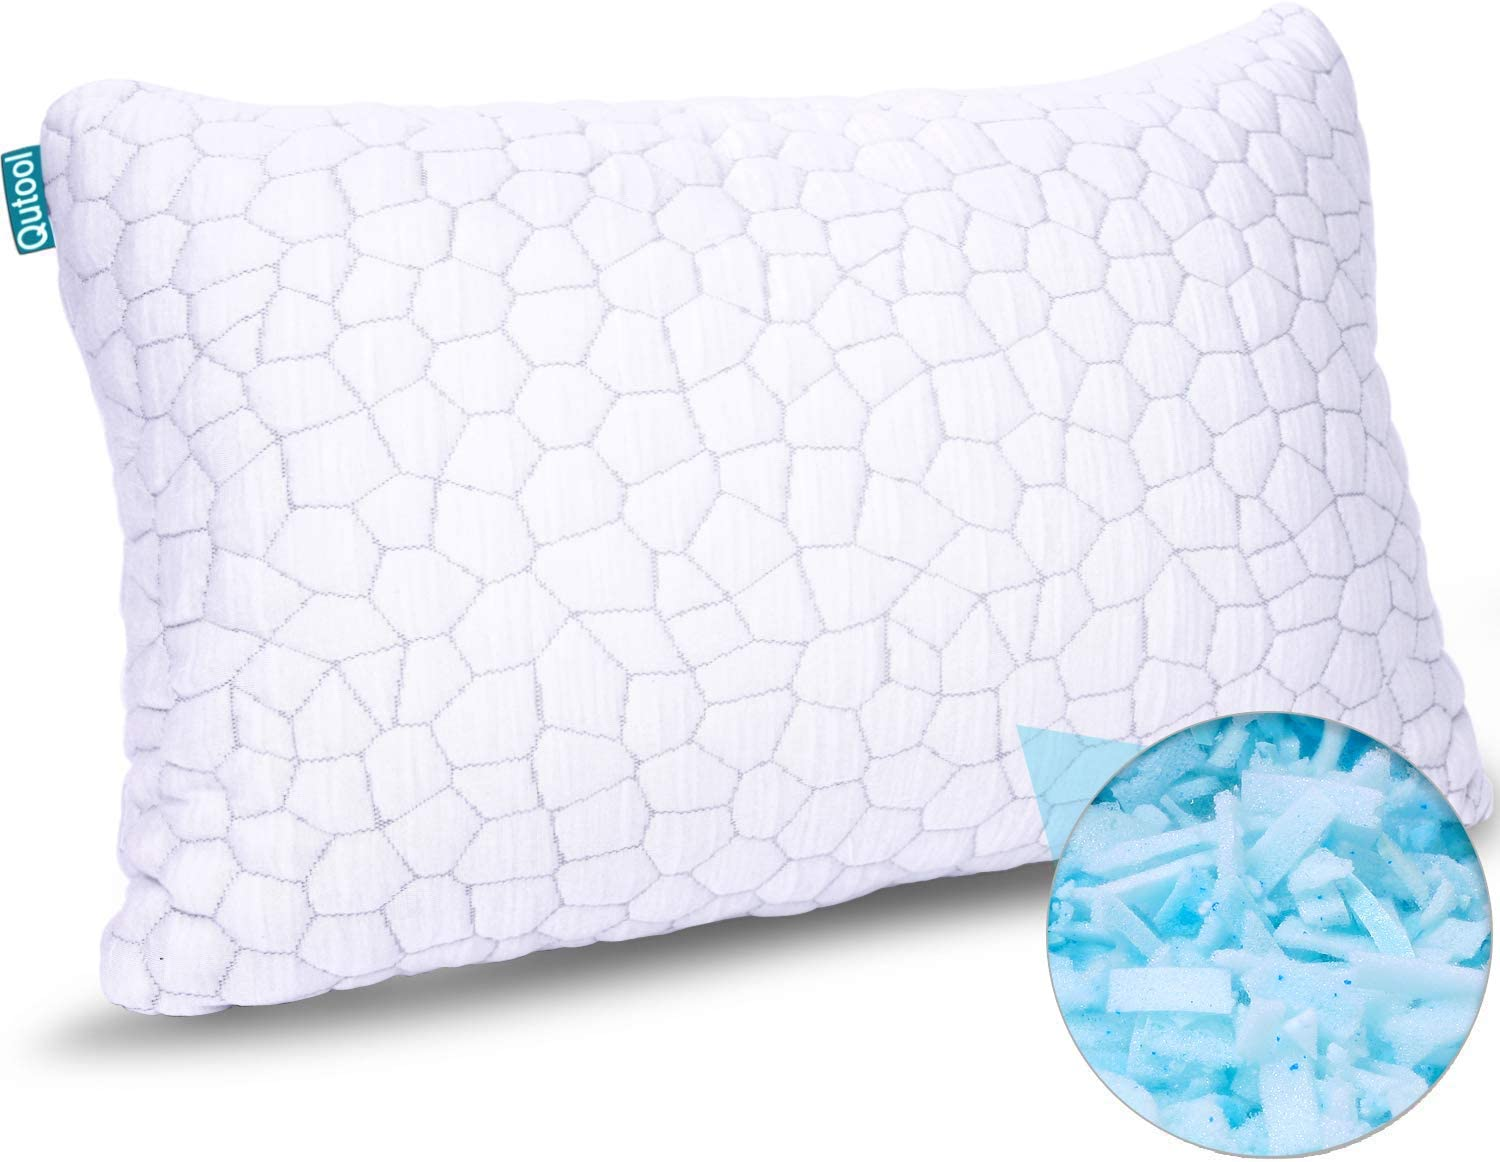 Shredded Memory Foam Pillows for Sleeping Cooling Bamboo Pillow with Adjustable Loft Hypoallergenic Bed Pillows for Side and Back Sleepers Washable Removable Derived Rayon Cover Queen Size (1-Pack)